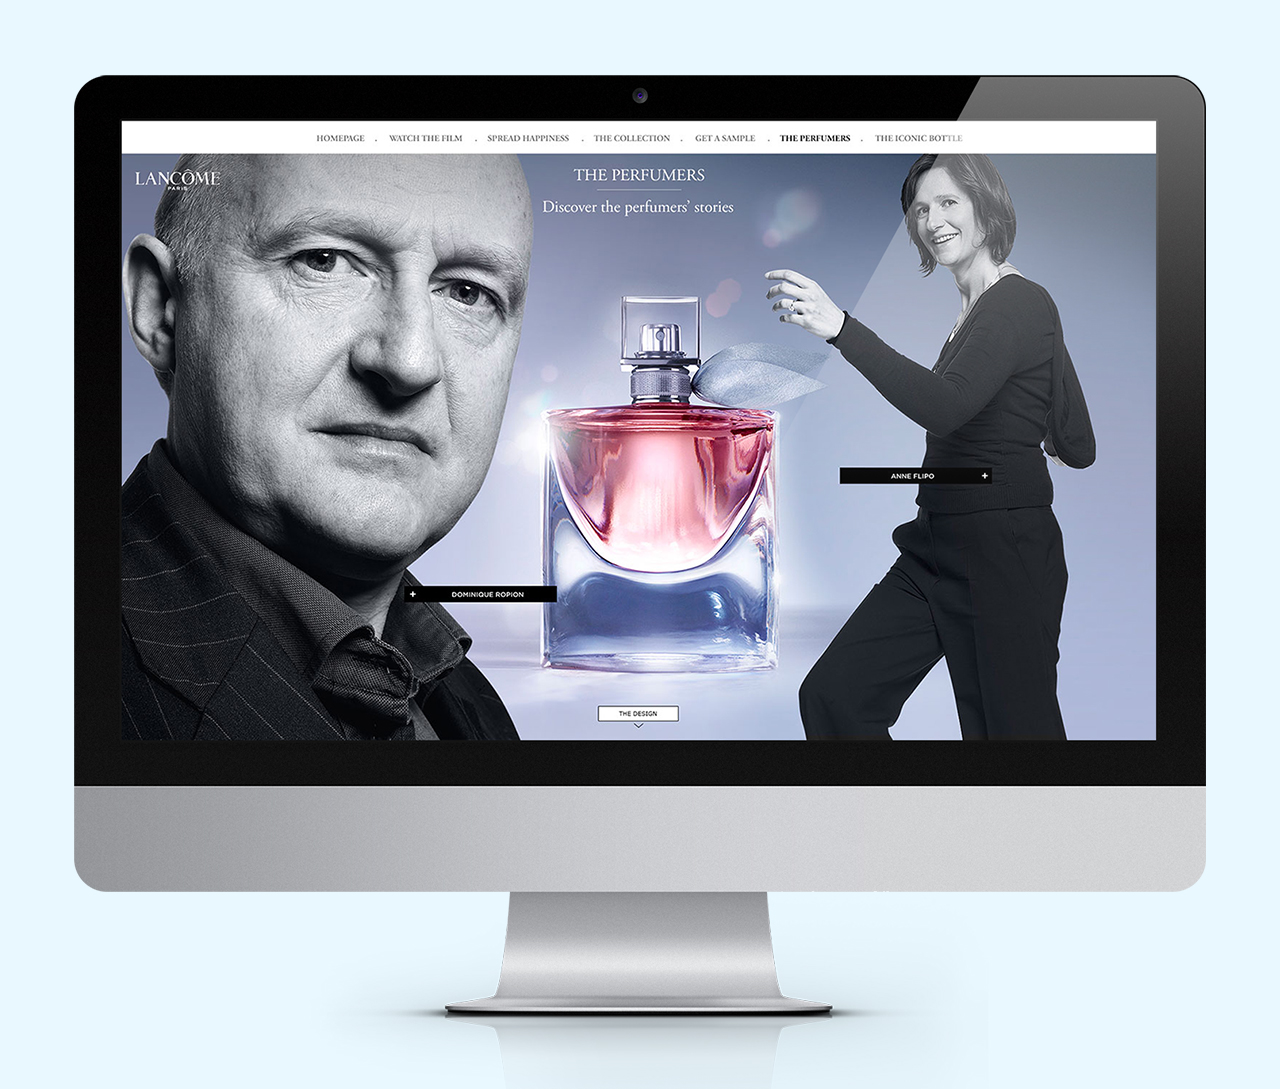 5-lancome-digital-website-interactive-inoui-studio-paris